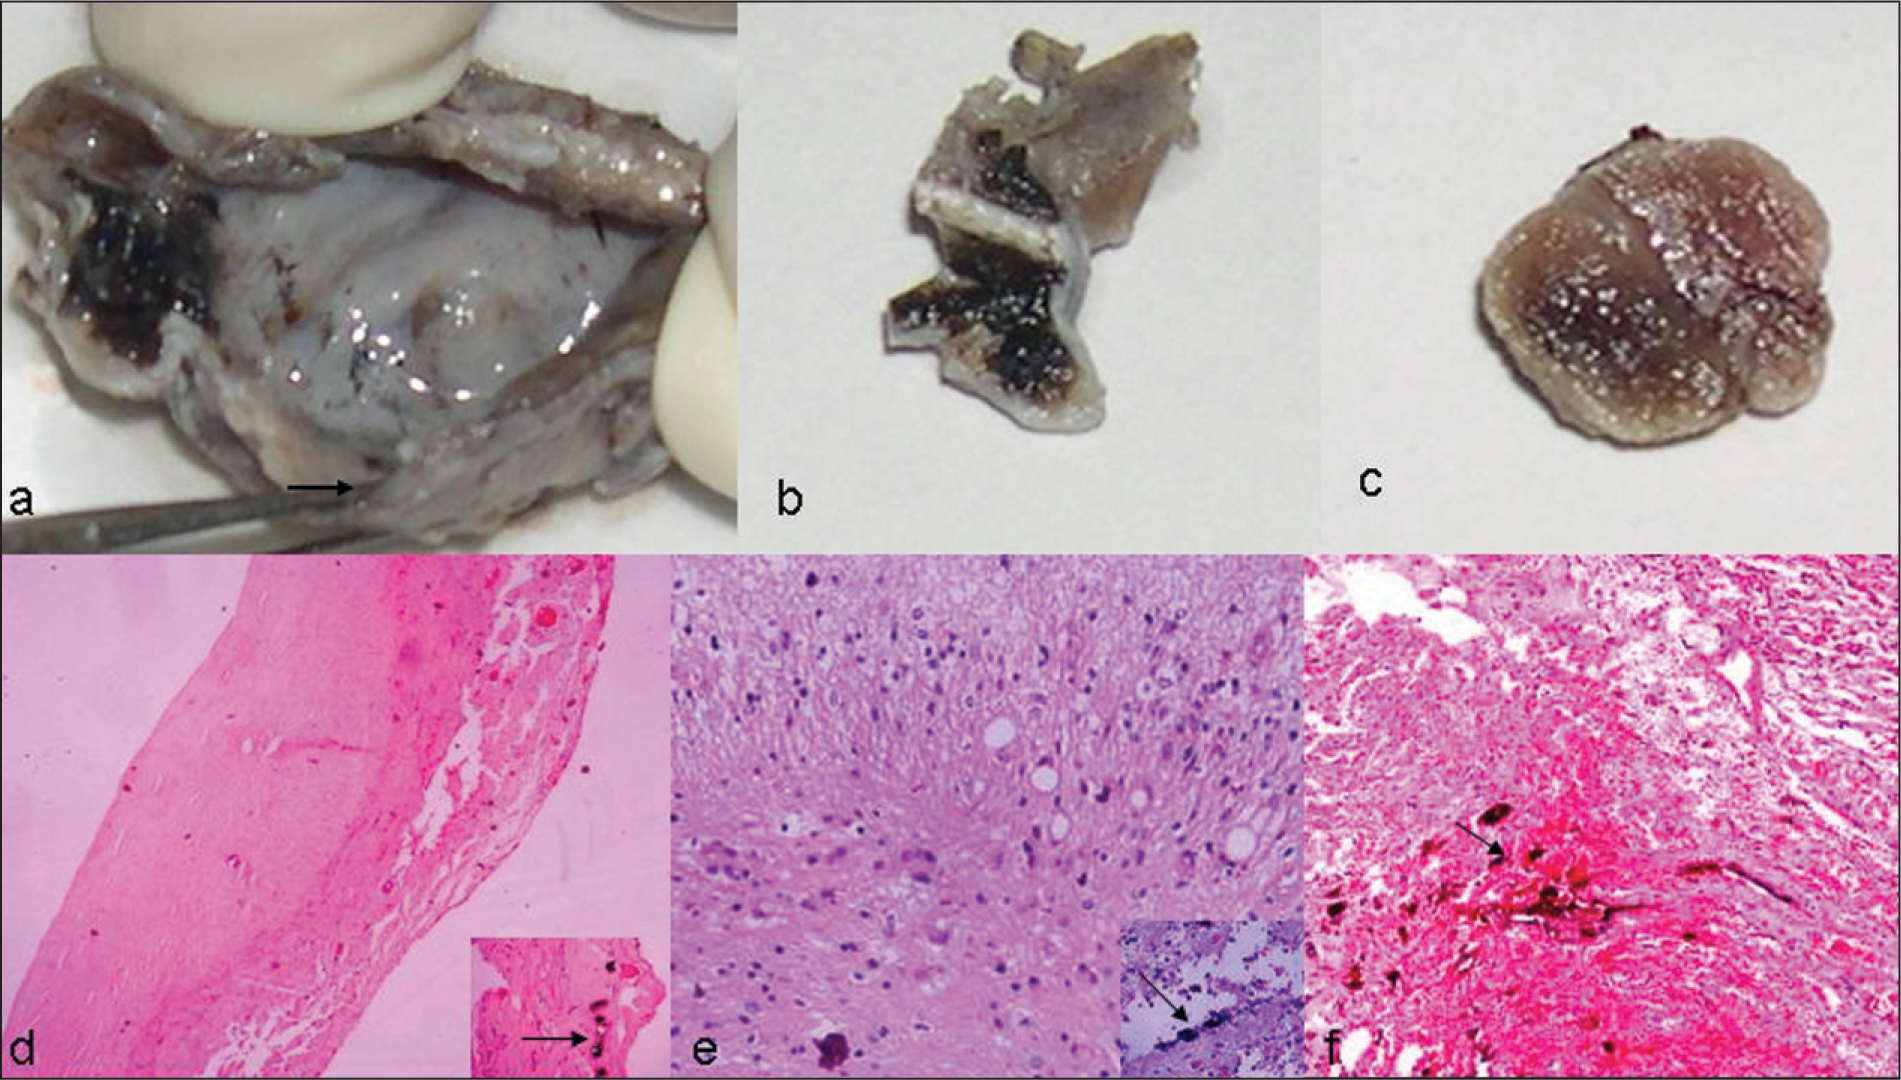 (A and B) Gross Appearance of the Cystic Masses Shows Whitish Sclera-Like Wall (arrow) in Association with Black Areas (uveal Pigment) and (C) the Solid Component Had a Variegated Appearance. (D) Low-Power View Shows Fibrous Cyst Wall Along with Blood Vessels. Inset Shows Uveal Pigment (arrow) Present Focally (hematoxylin–Eosin, Original Magnification ×100). (E) Higher Magnification Shows Neuroglial Tissue Filling the Cystic Cavity. Inset Shows Calcification (arrow) (hematoxylin–Eosin, Original Magnification ×400). (F) Rudimentary Choroid Represented by Vascularized Tissue in Association with Uveal Pigment (arrow) (hematoxylin–Eosin, Original Magnification ×200).